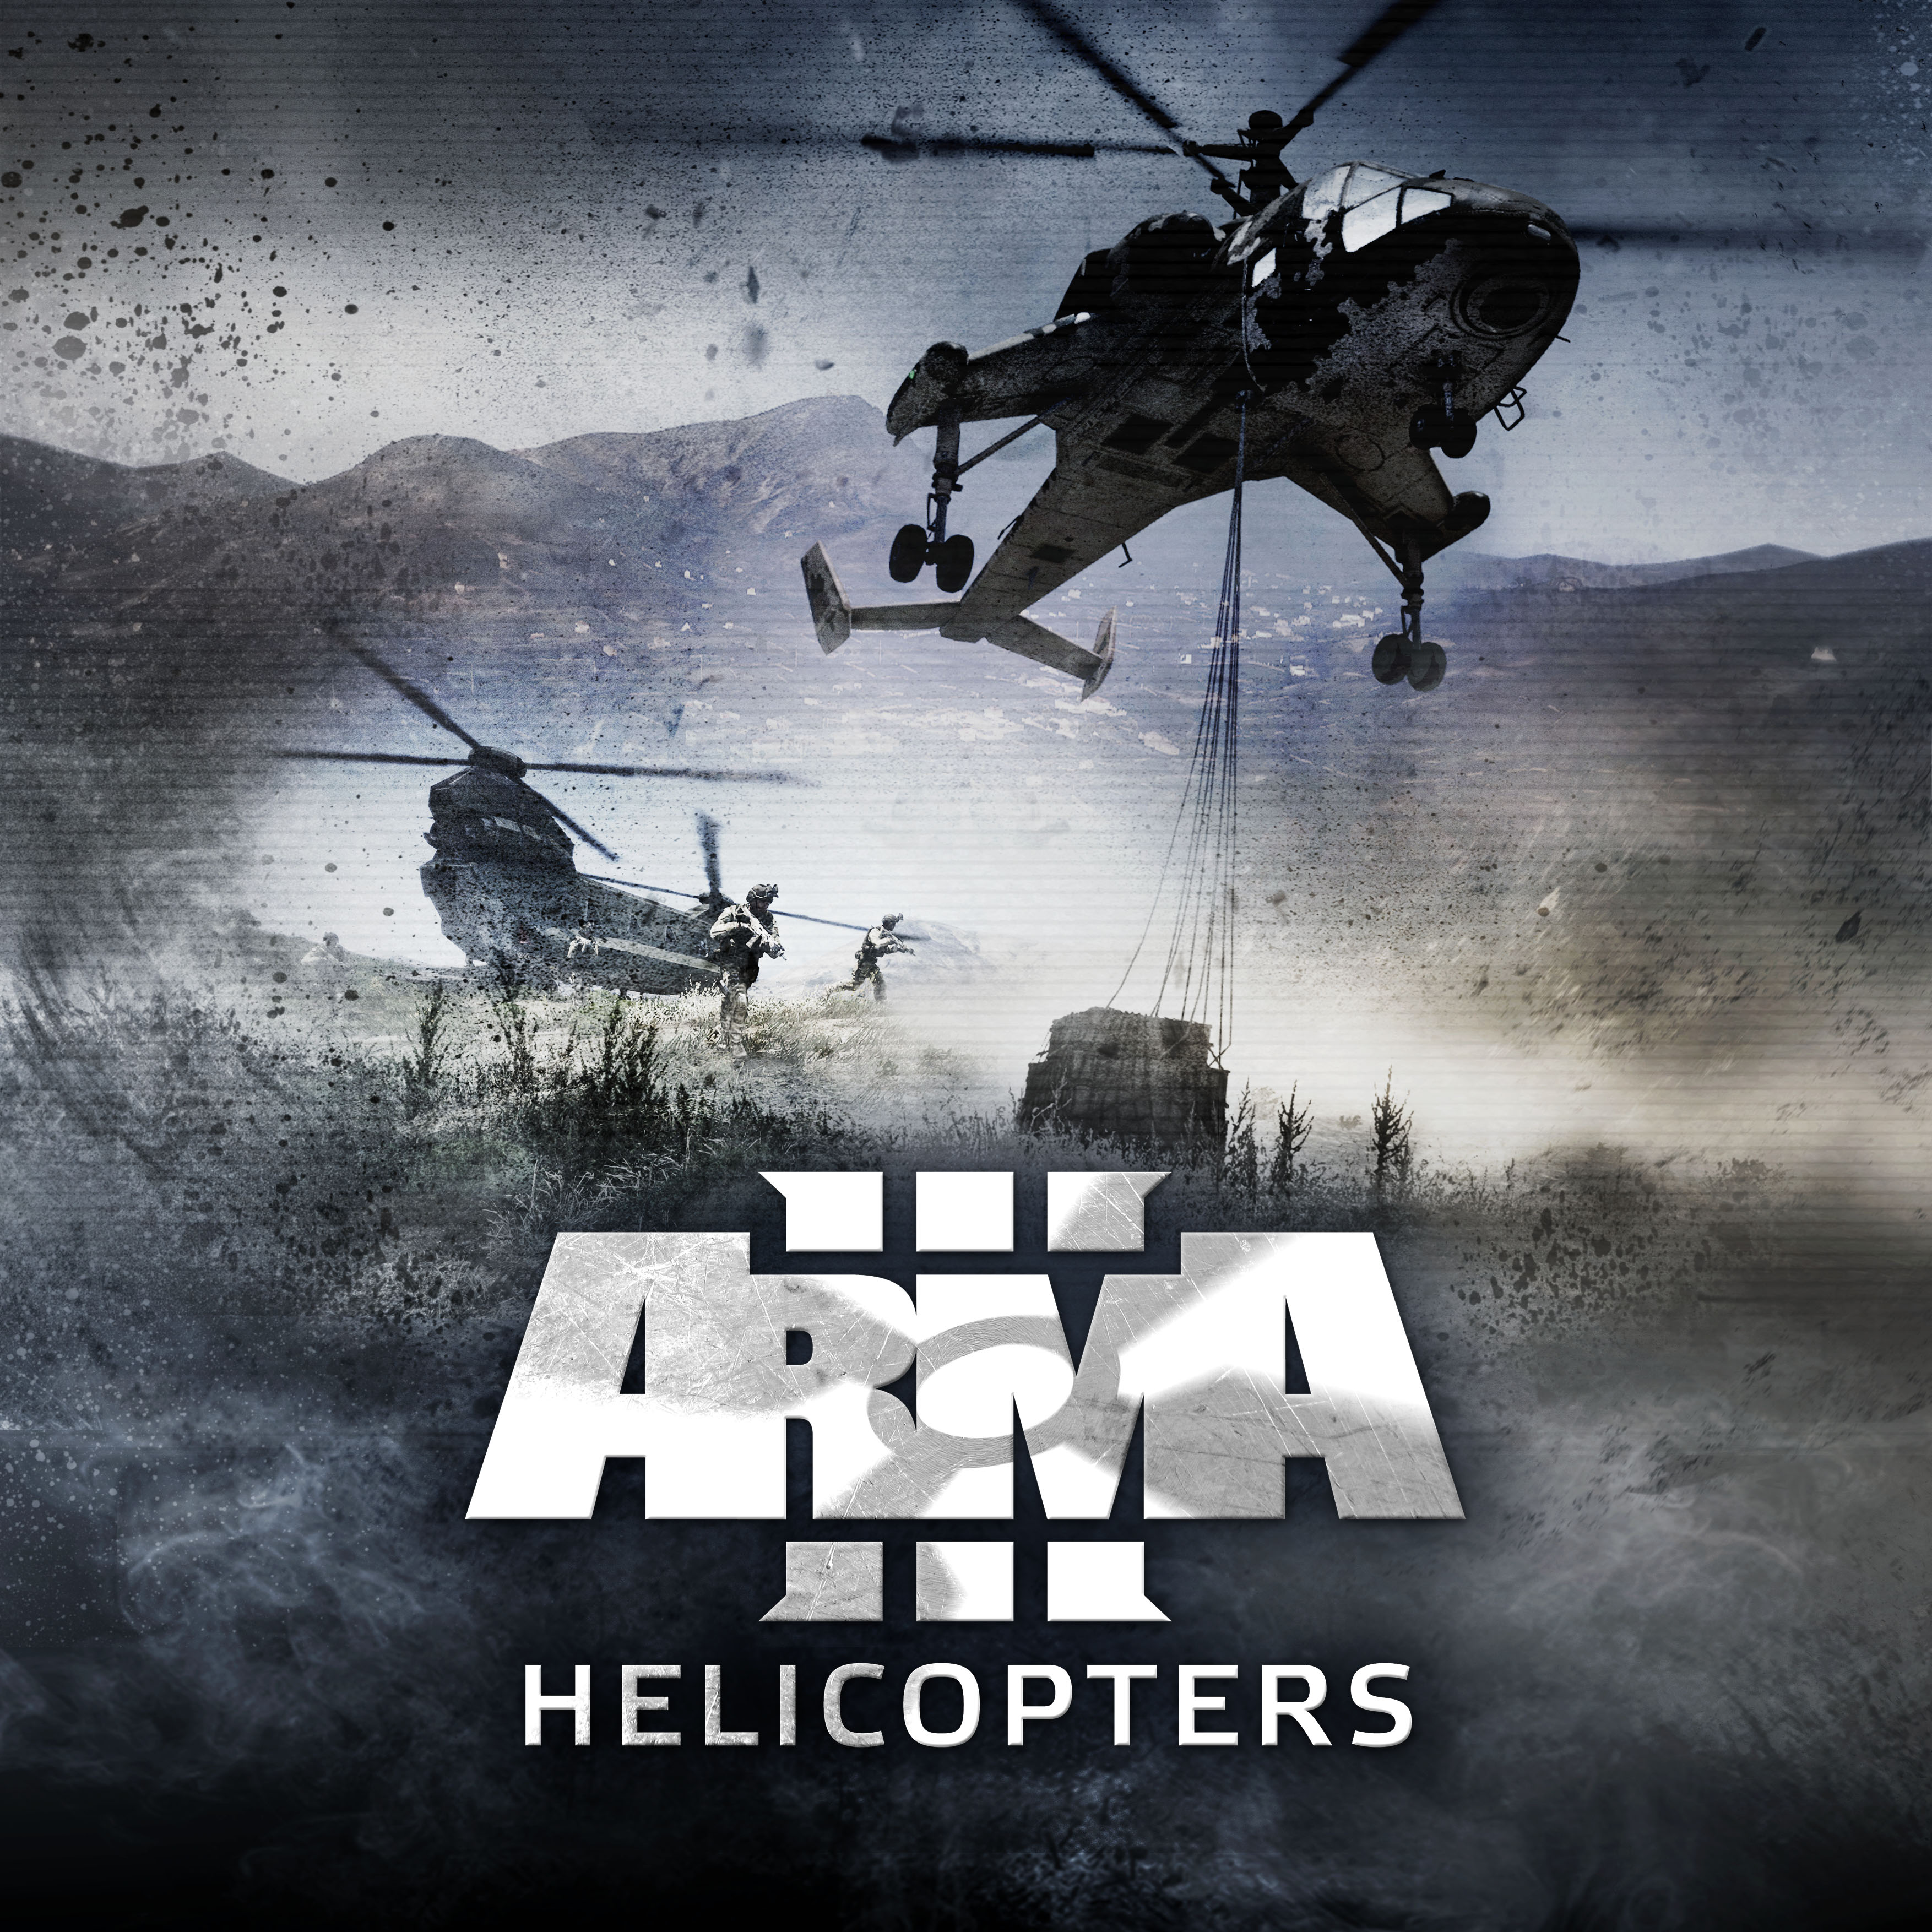 Arma 3 Helicopters DLC now available - The Region 2 Show